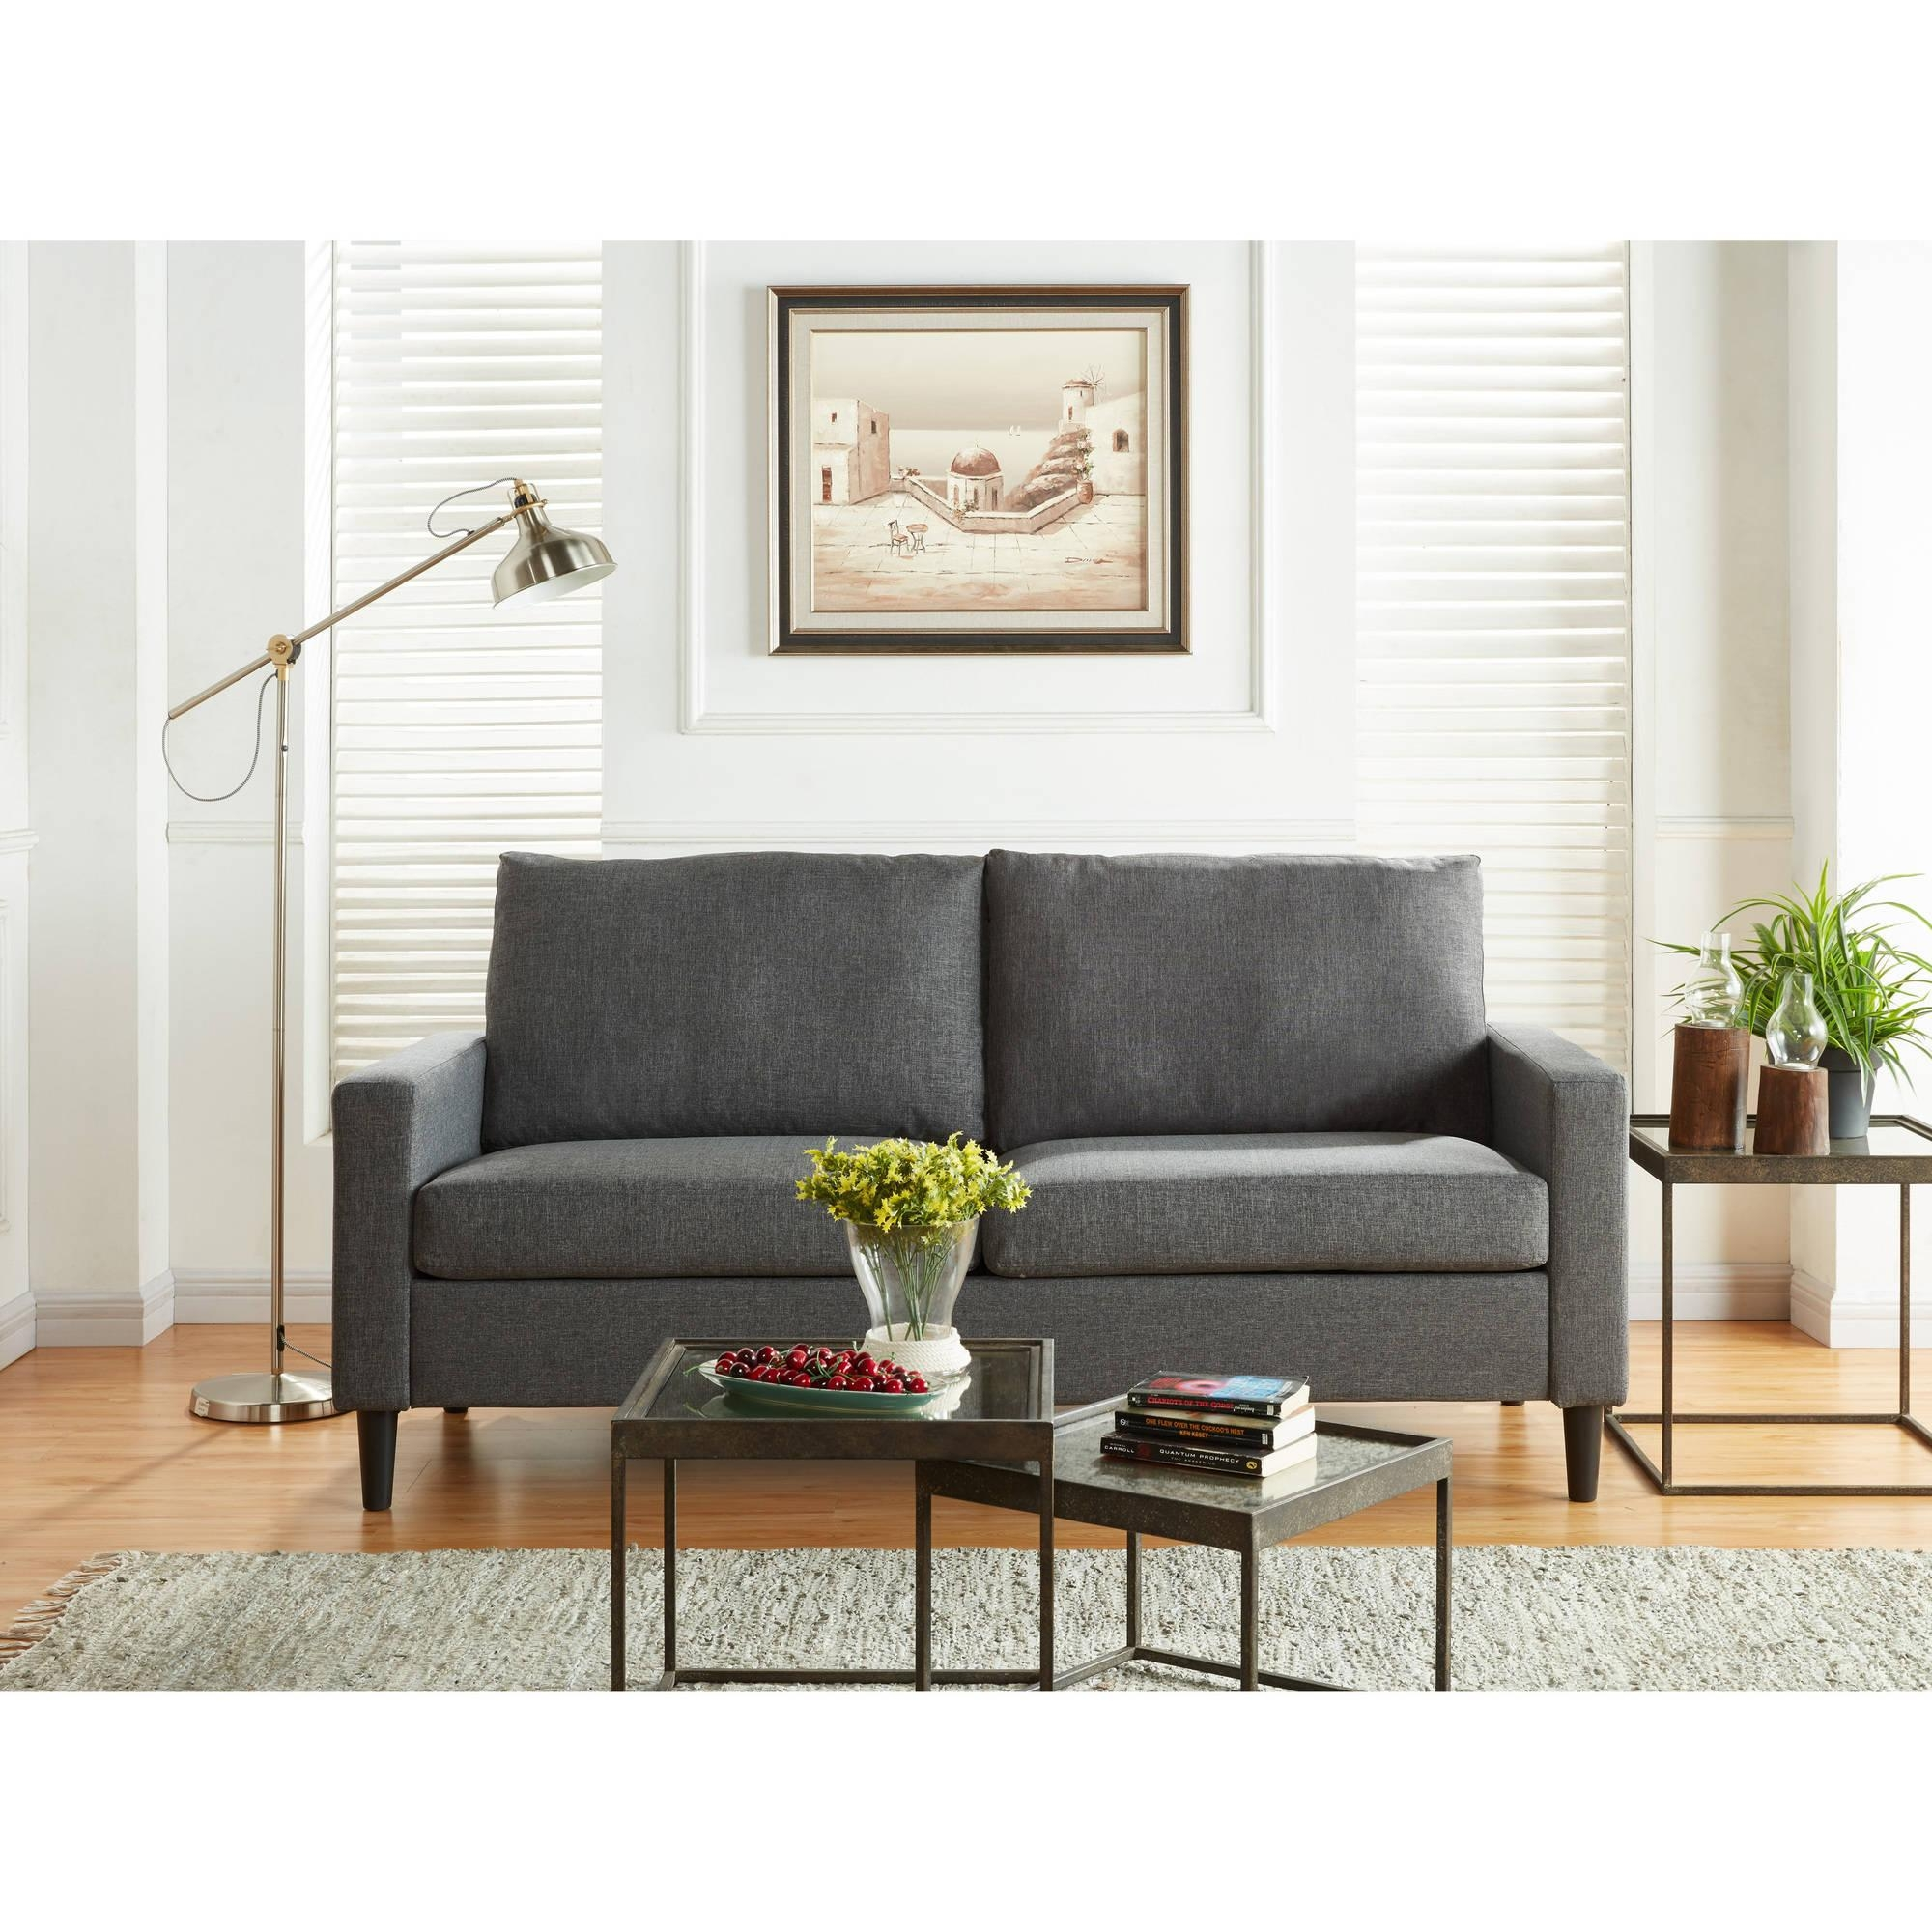 Sectional Sleeper Sofas Intended For Big Lots Sofa Sleeper (Image 6 of 20)